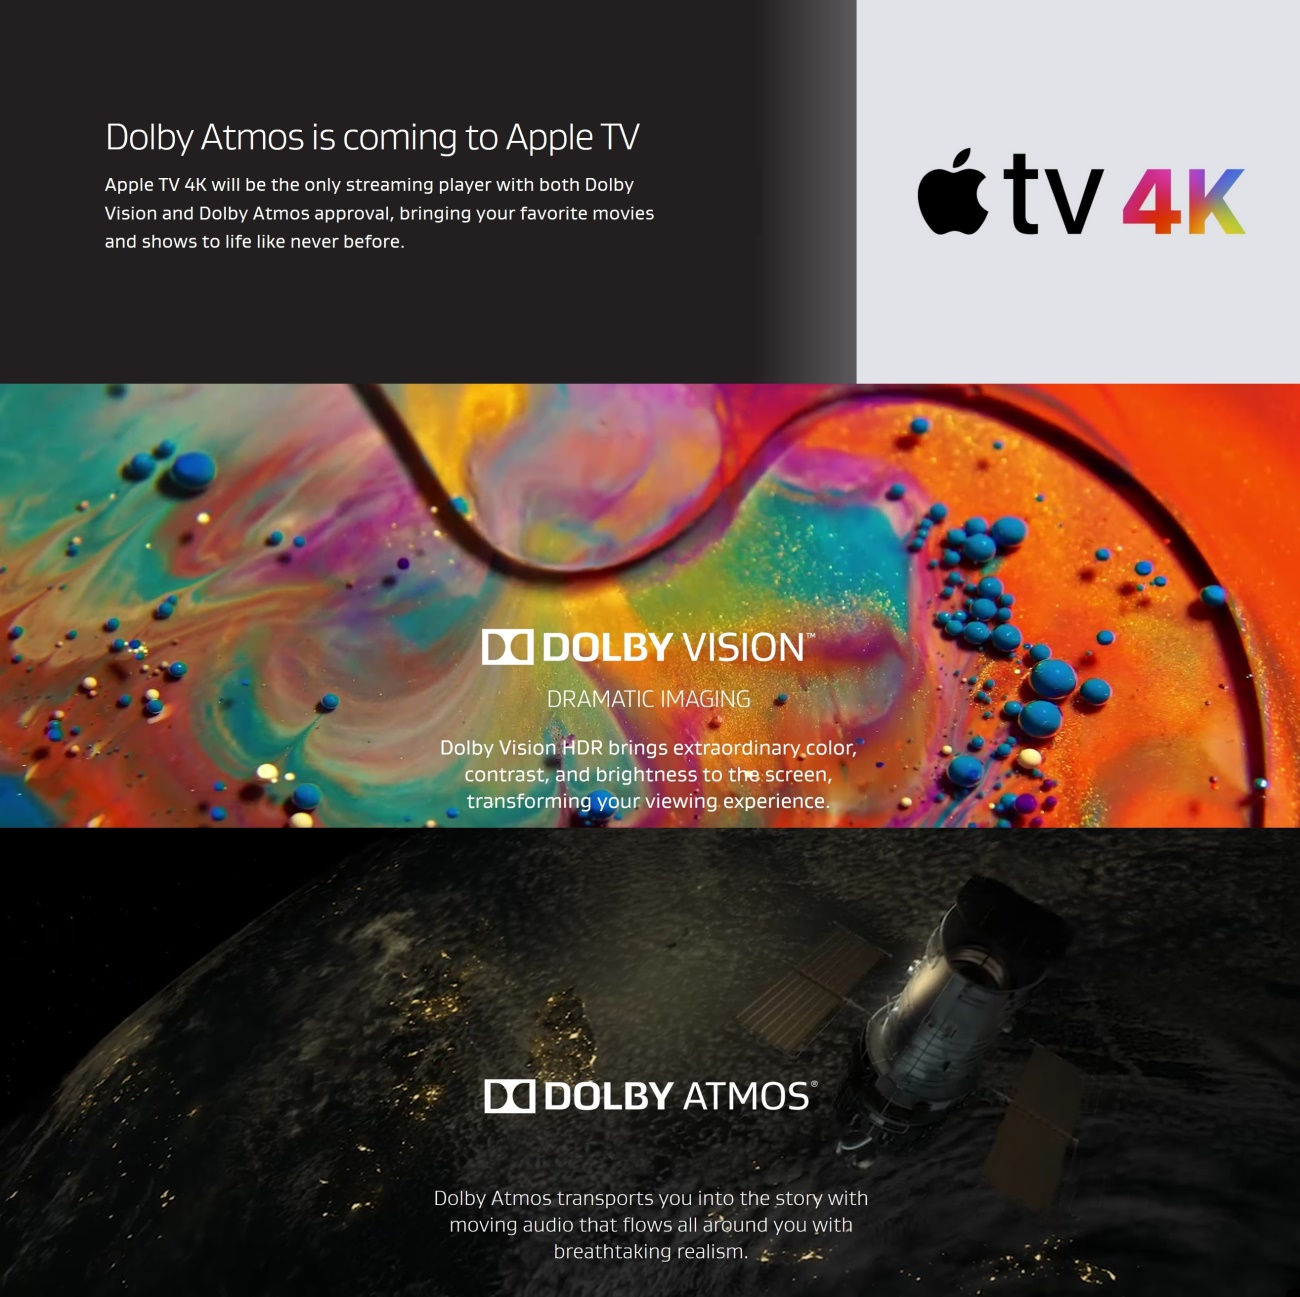 Dolby Atmos e Apple TV 4K